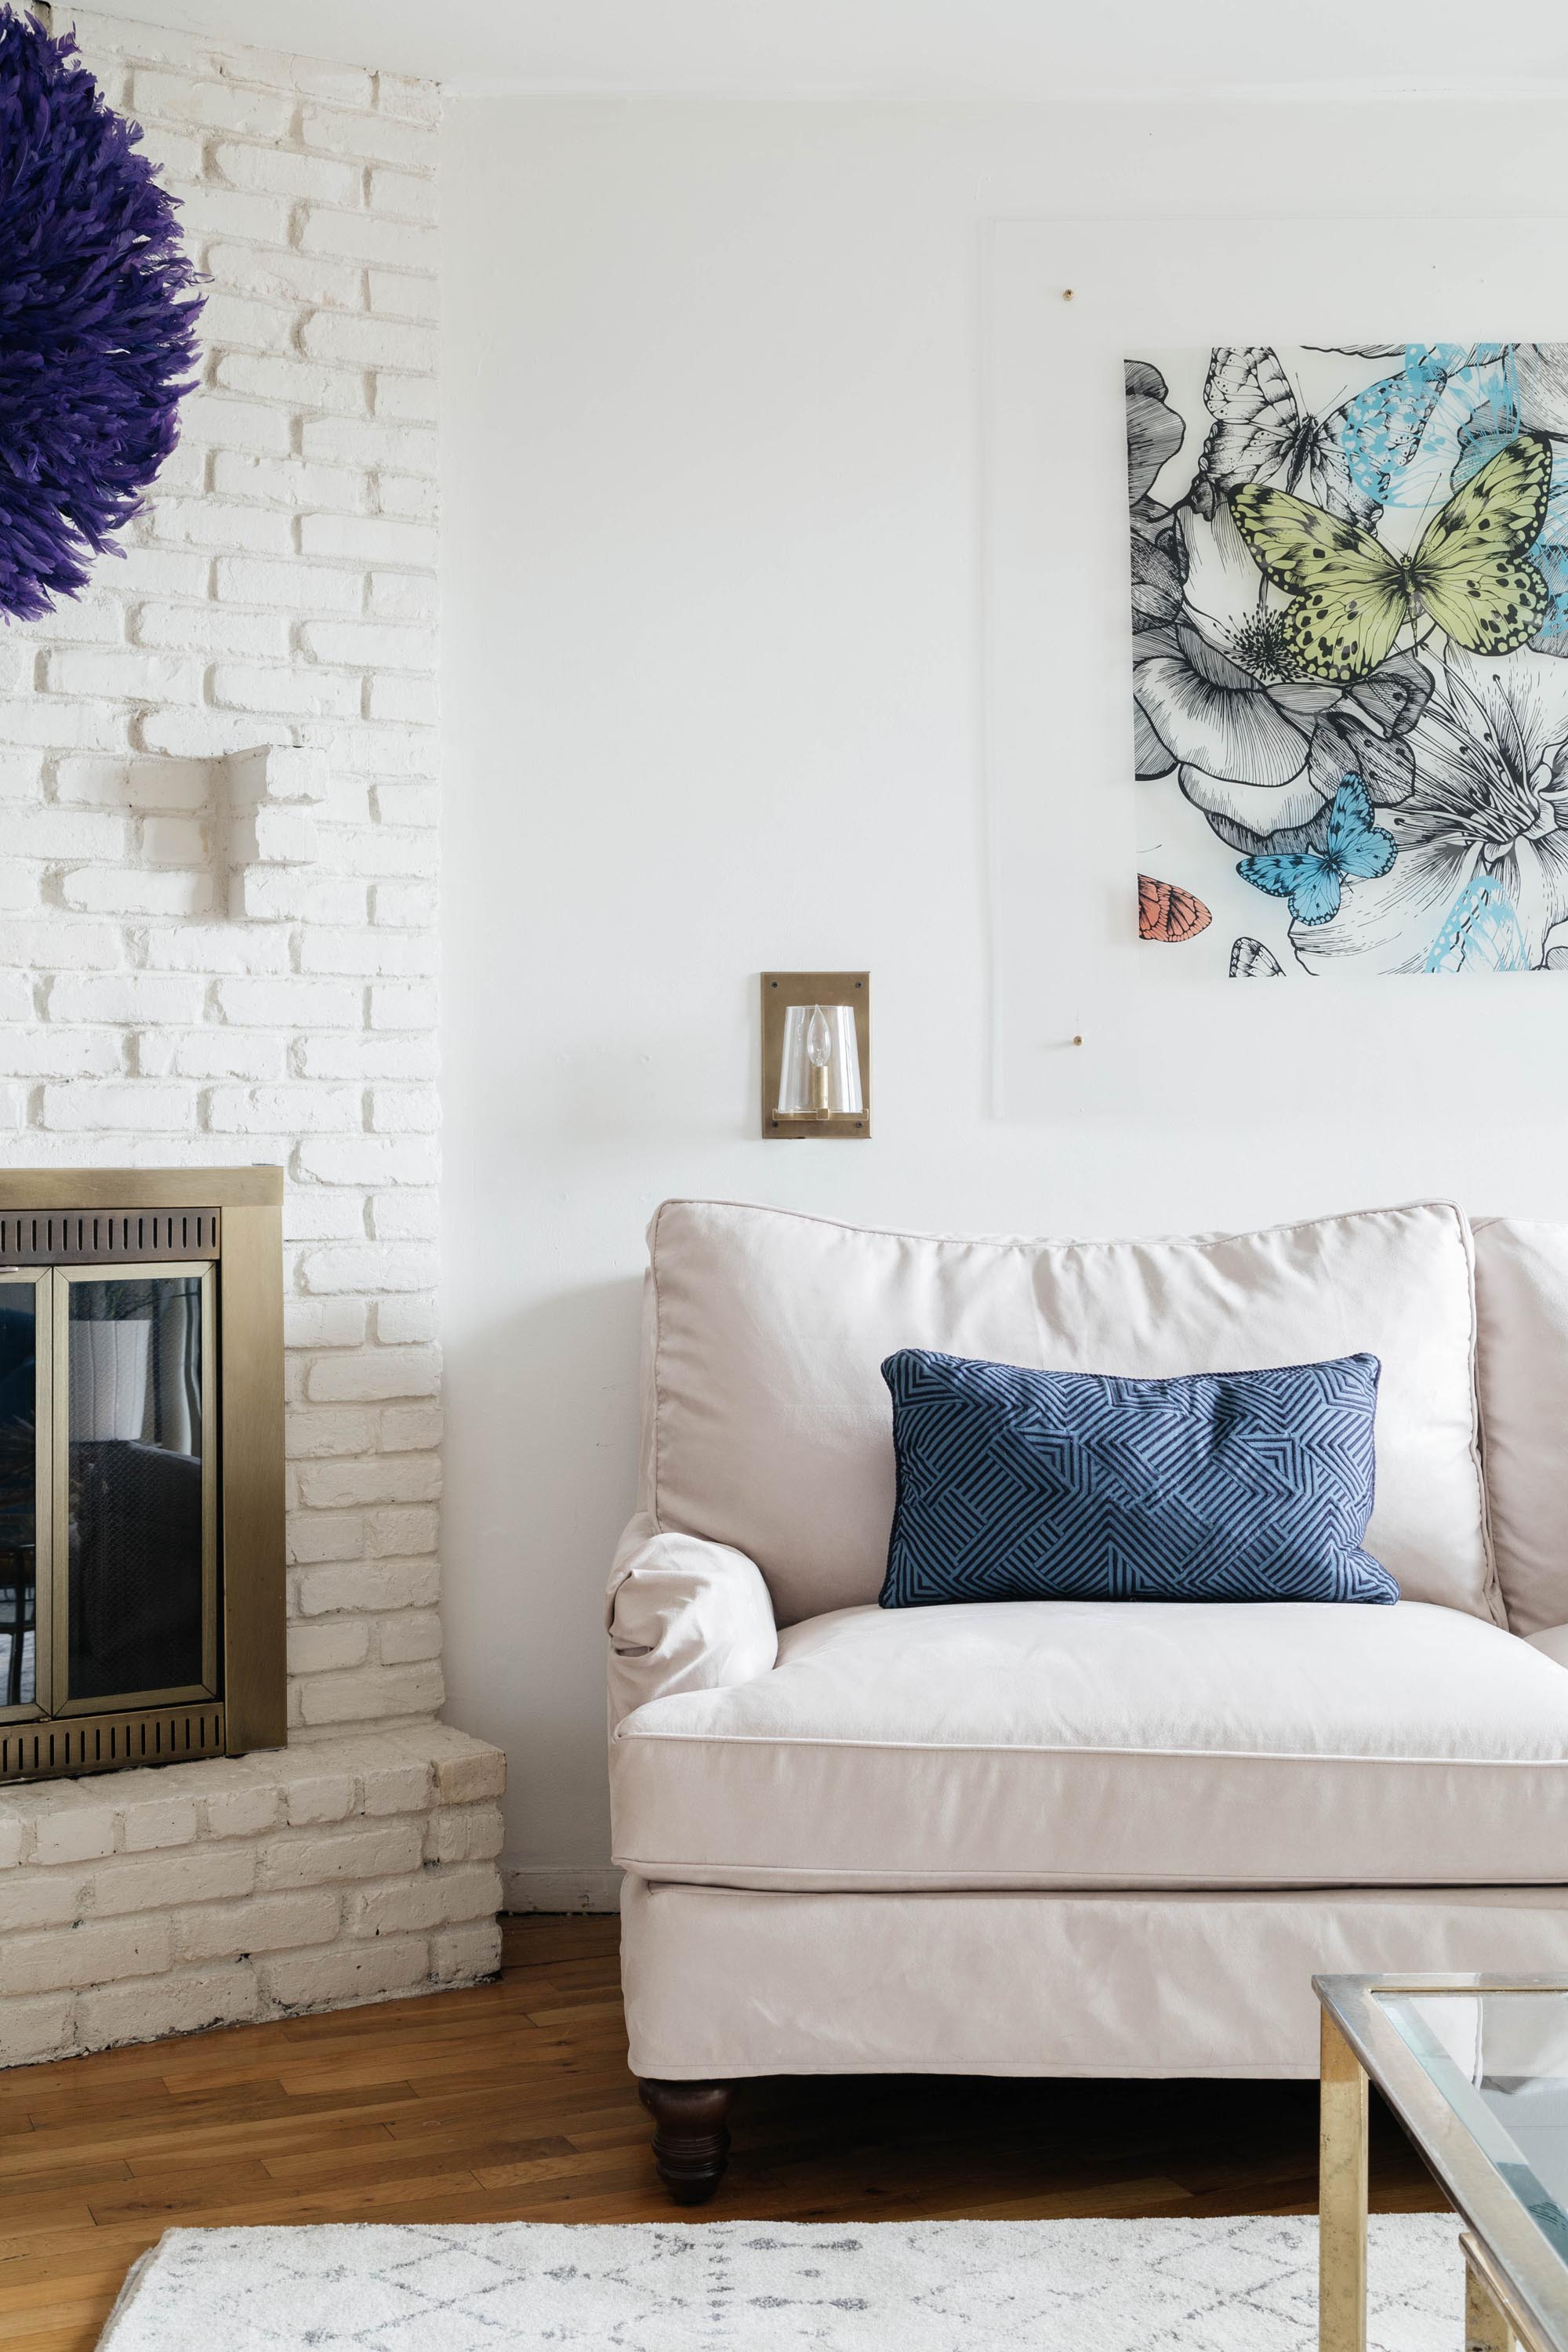 Corner of living room space with white painted fireplace